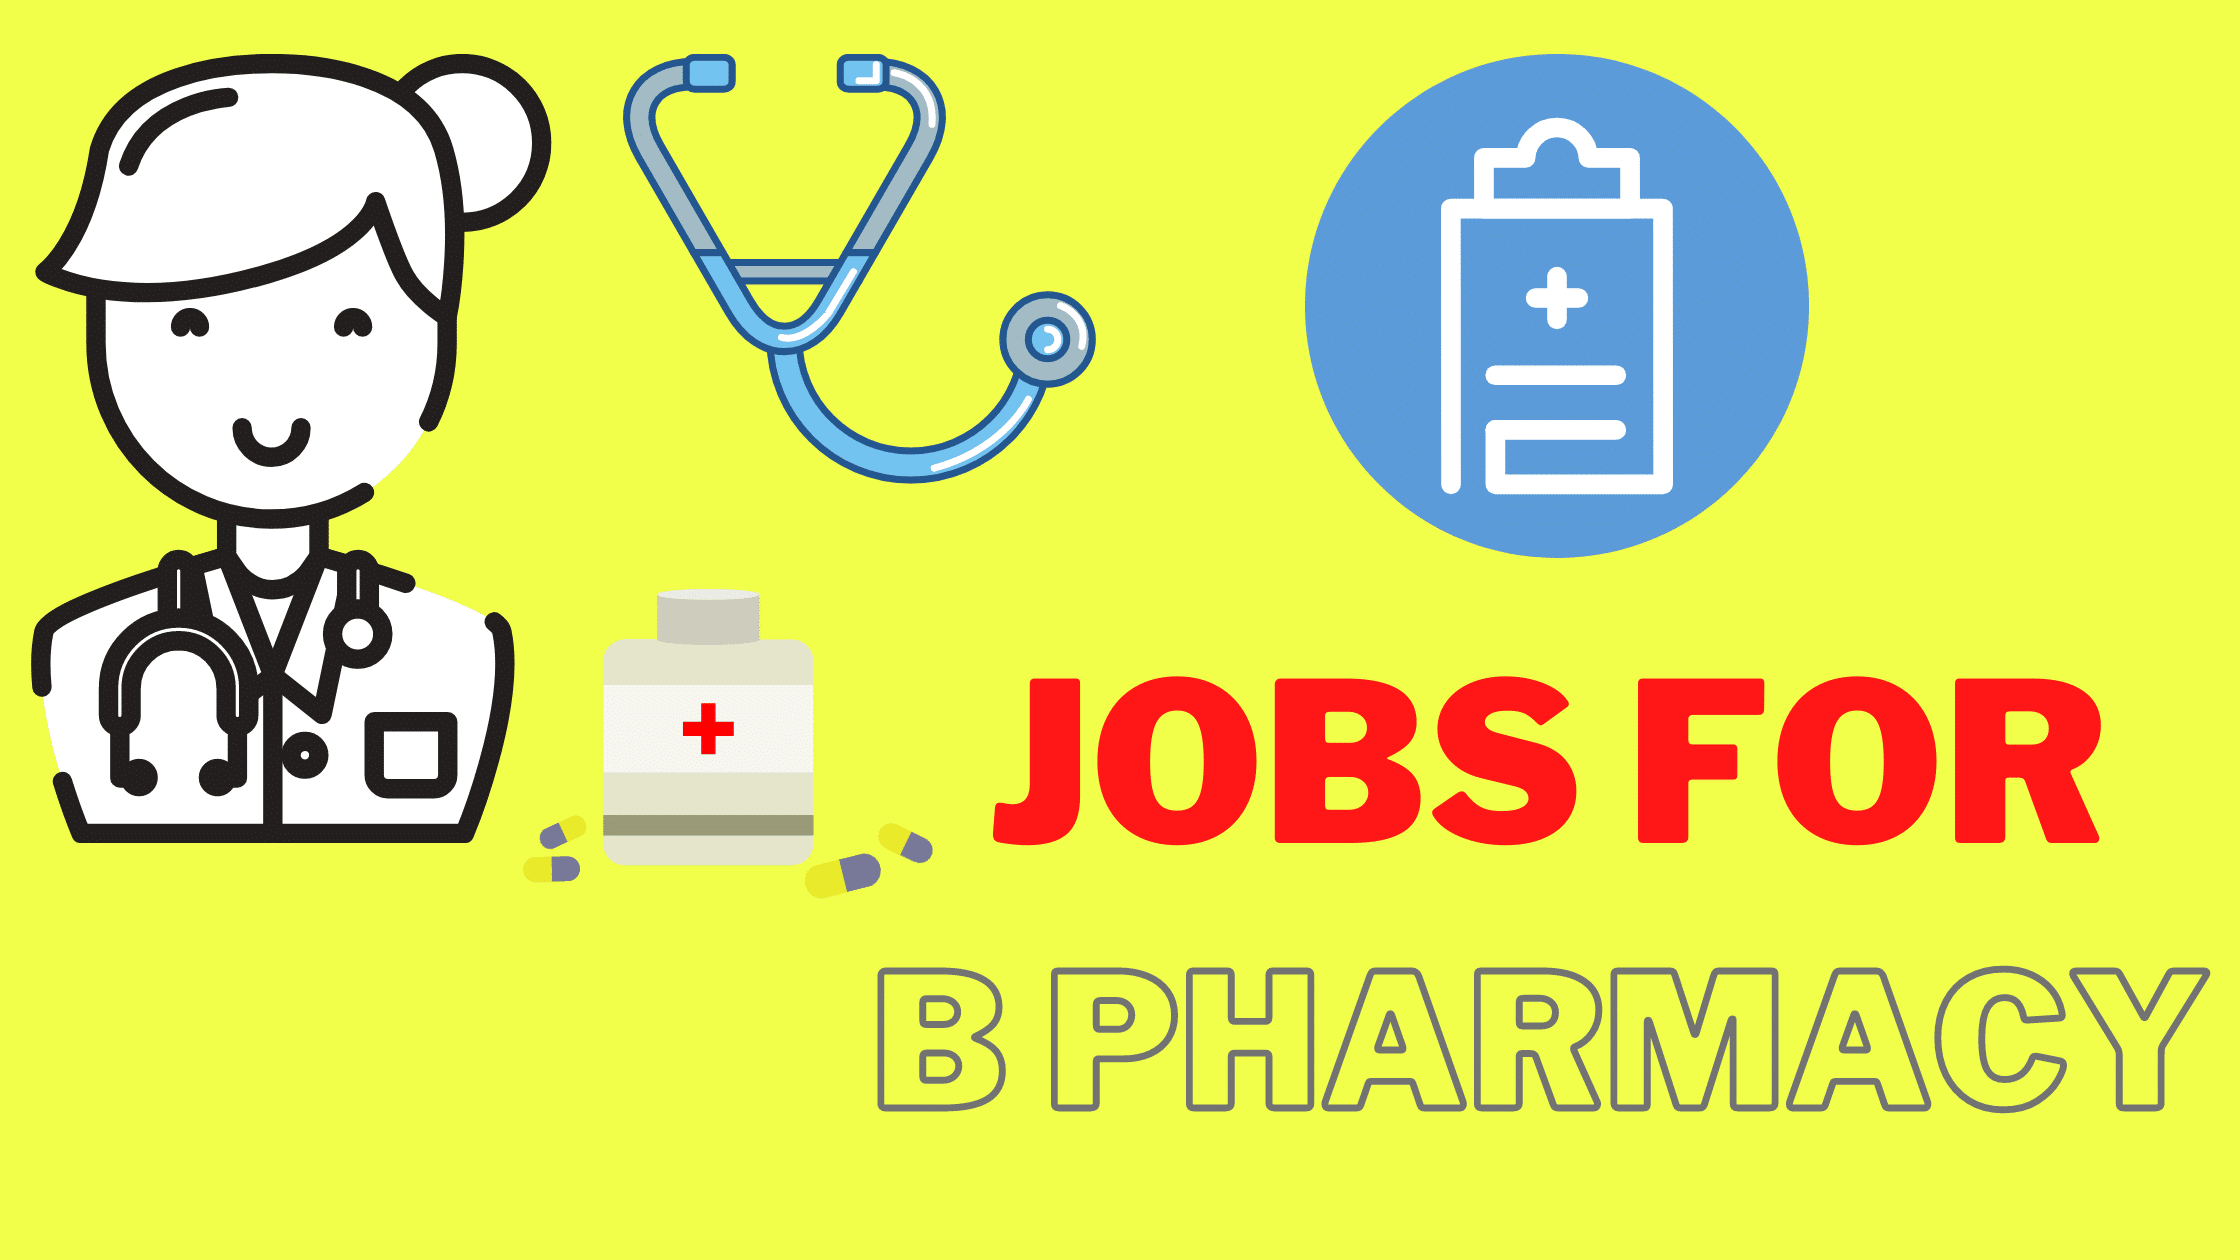 Jobs for B Pharmacy